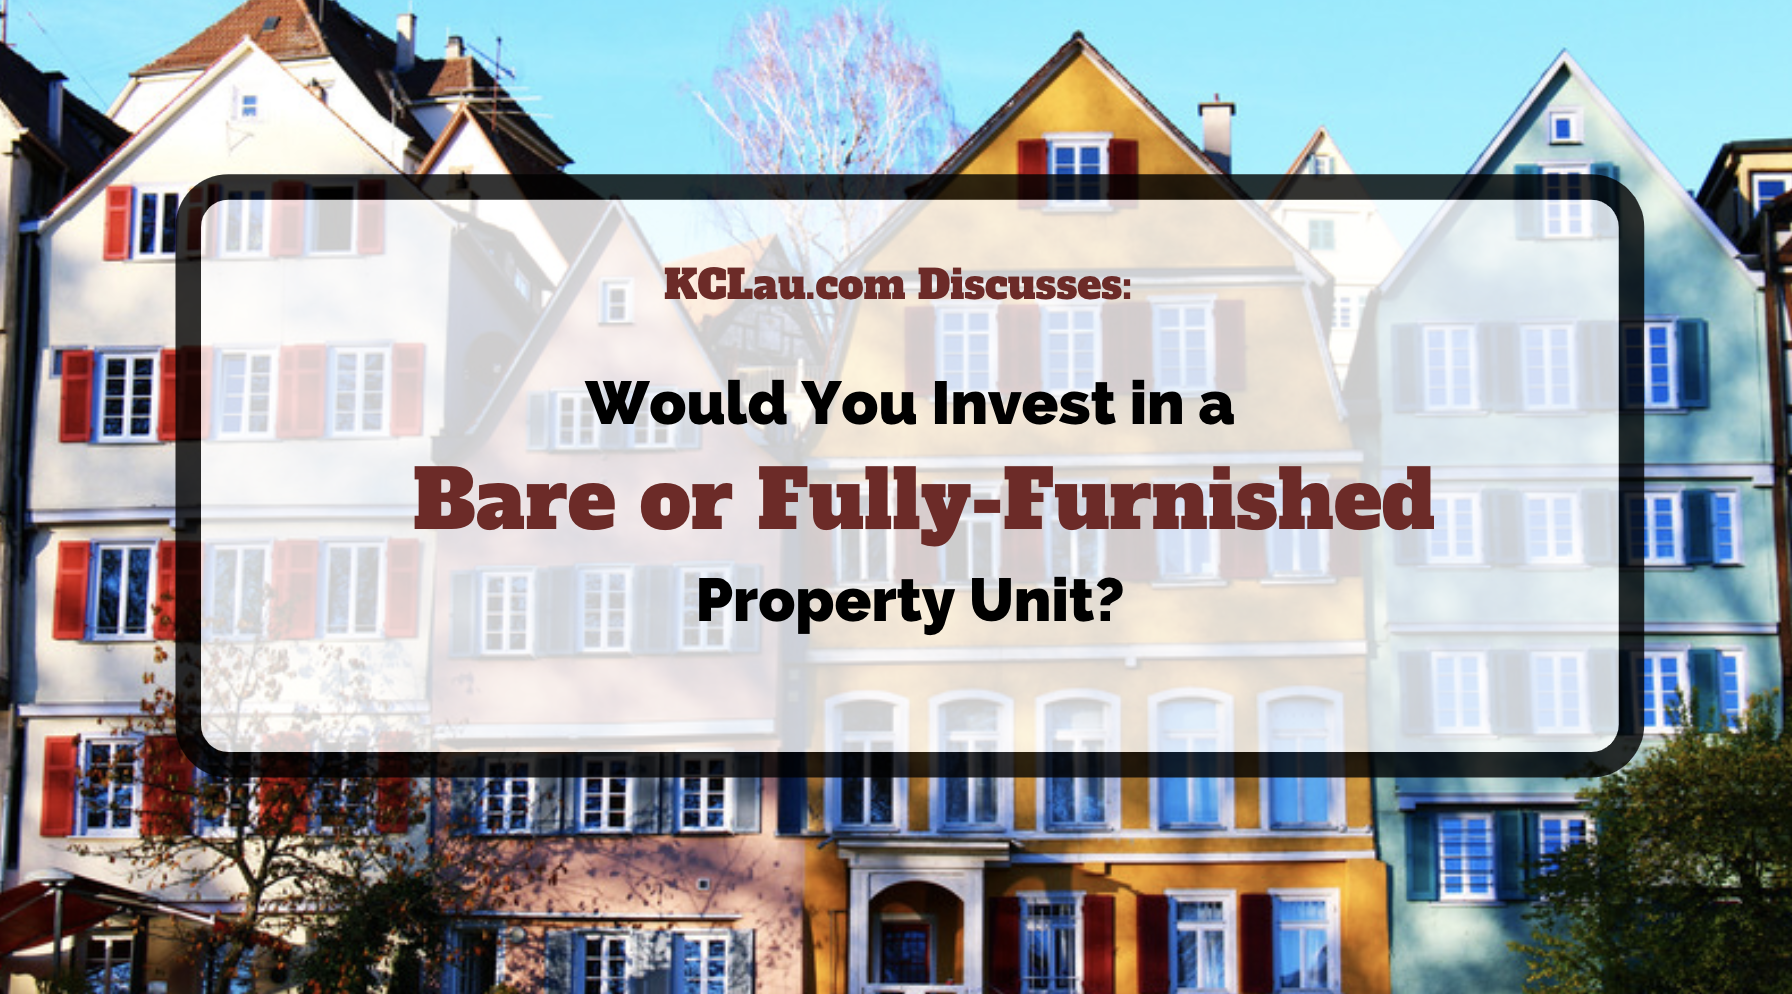 Would You Consider Buying in a Bare Unit or a Fully-Furnished Property Unit for Investment?